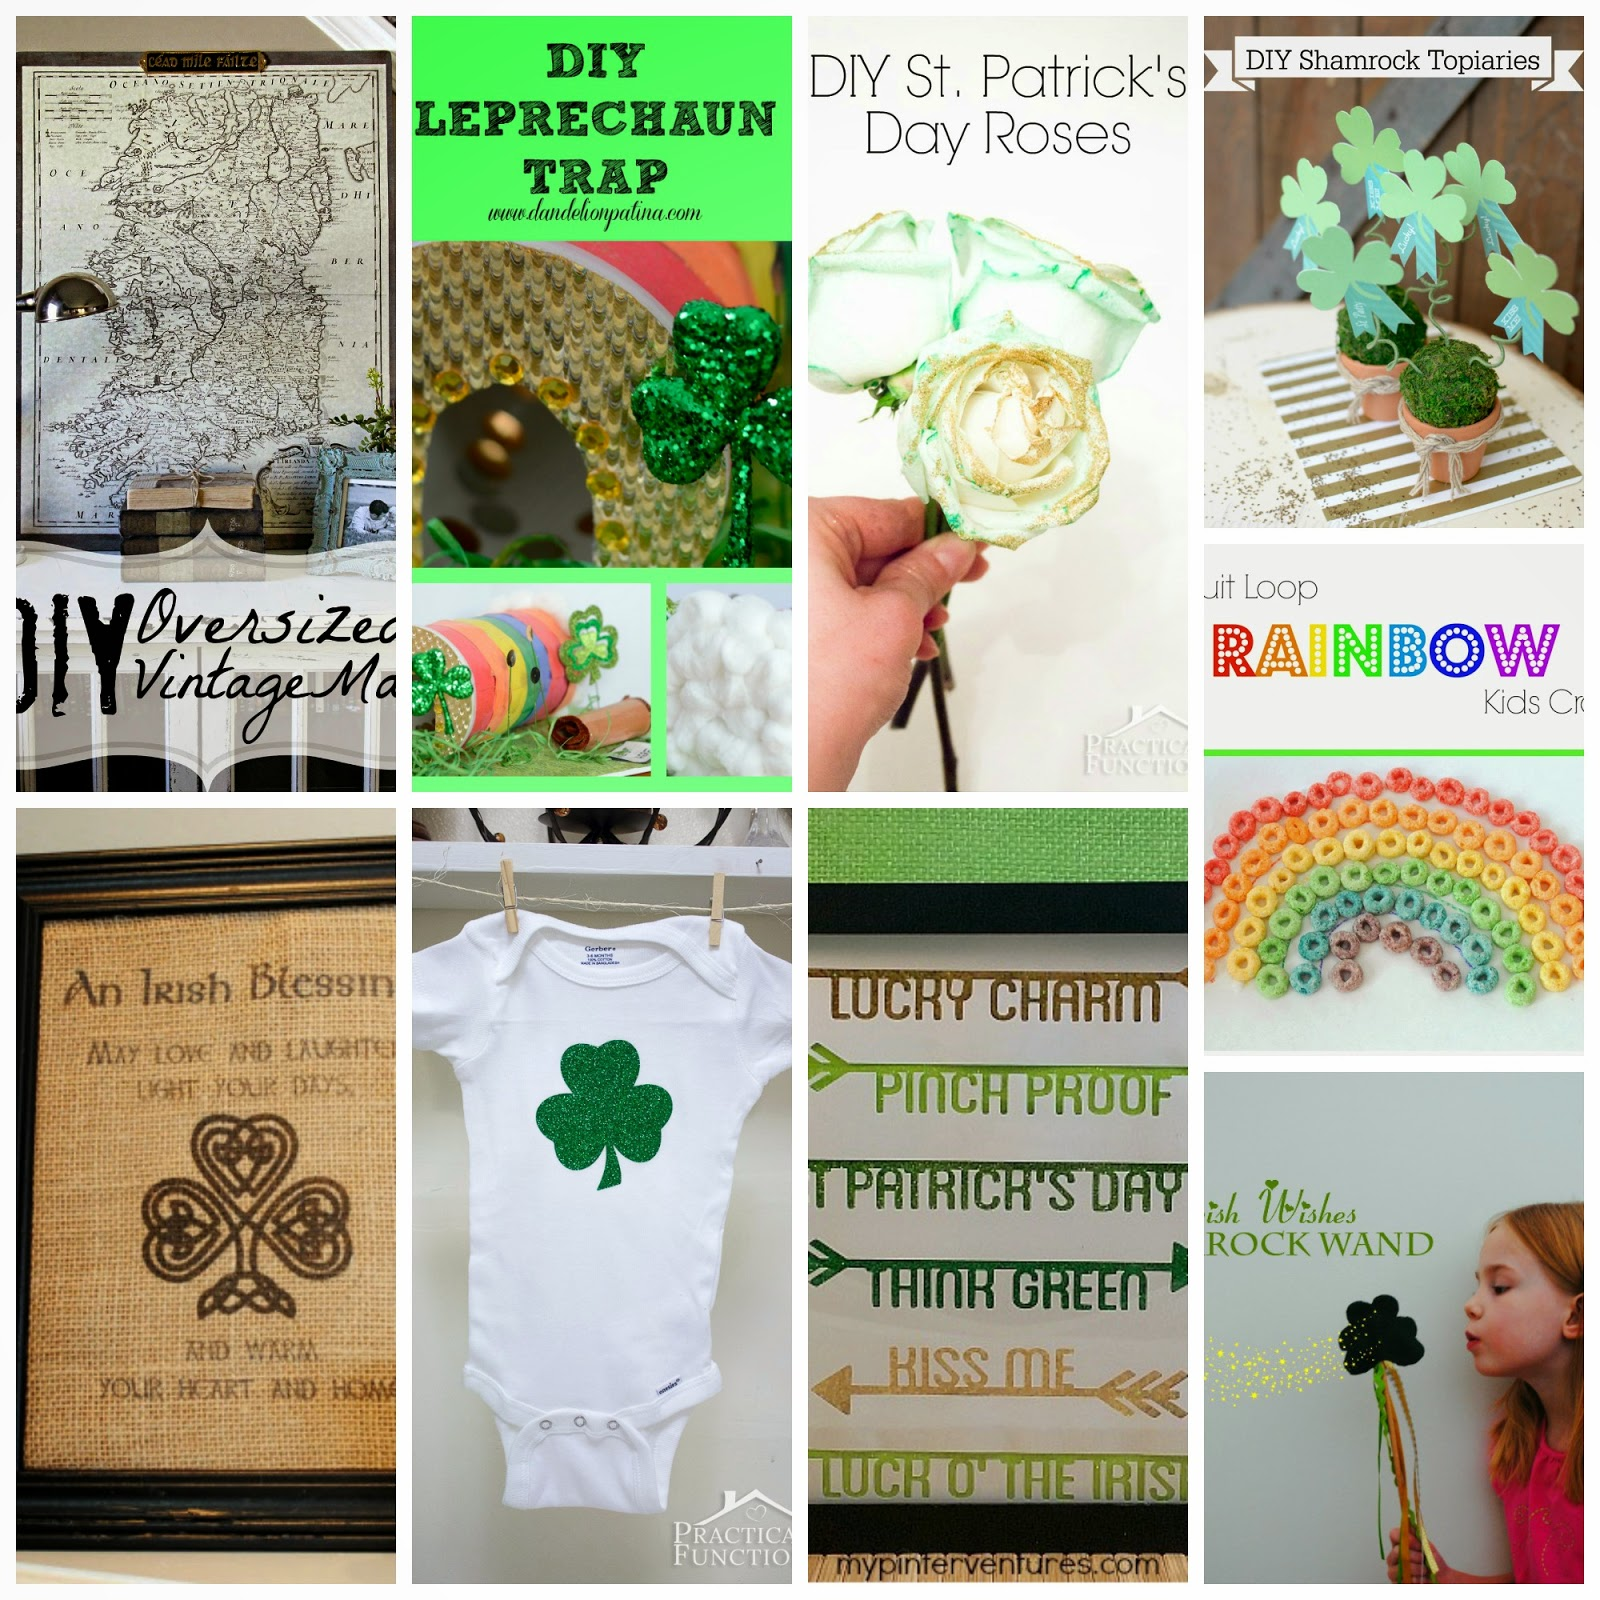 10 Super Awesome St. Patrick's Day Inspired Crafts #diy #stpatricksday